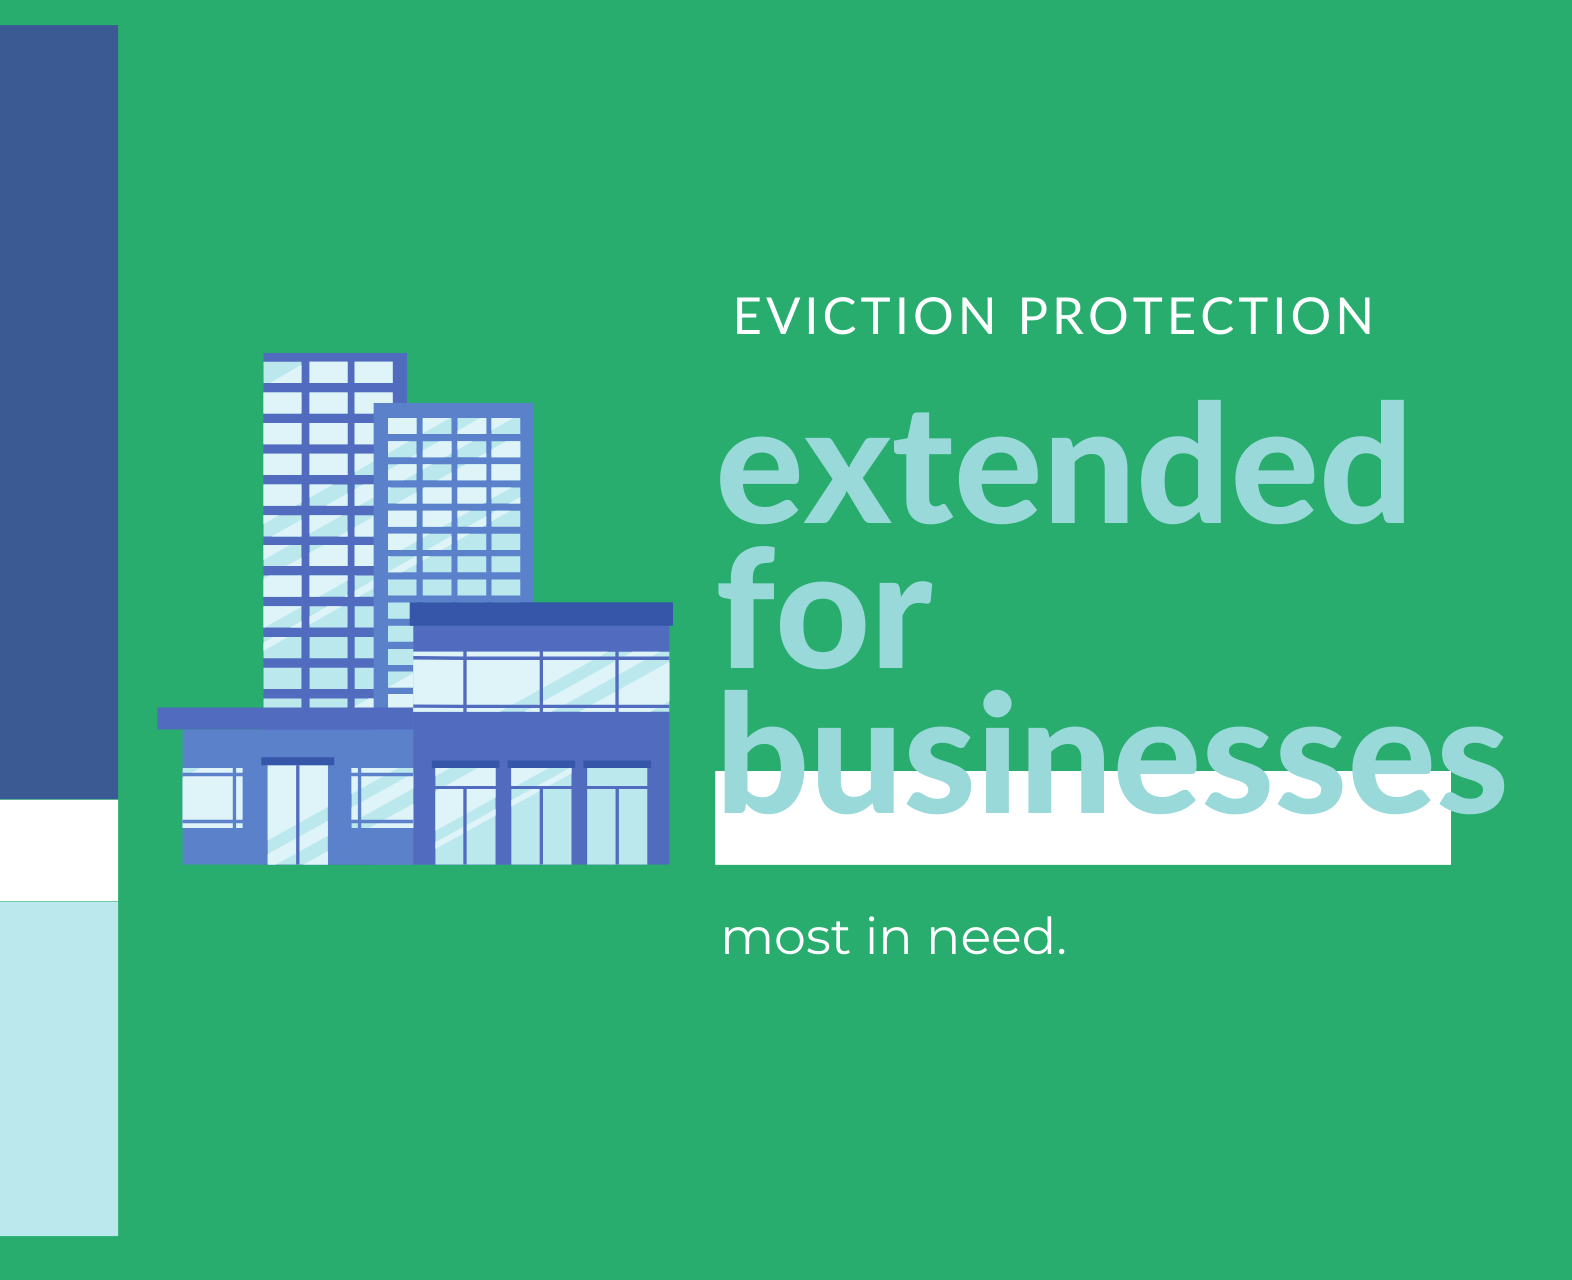 Eviction protection extended for businesses most in need